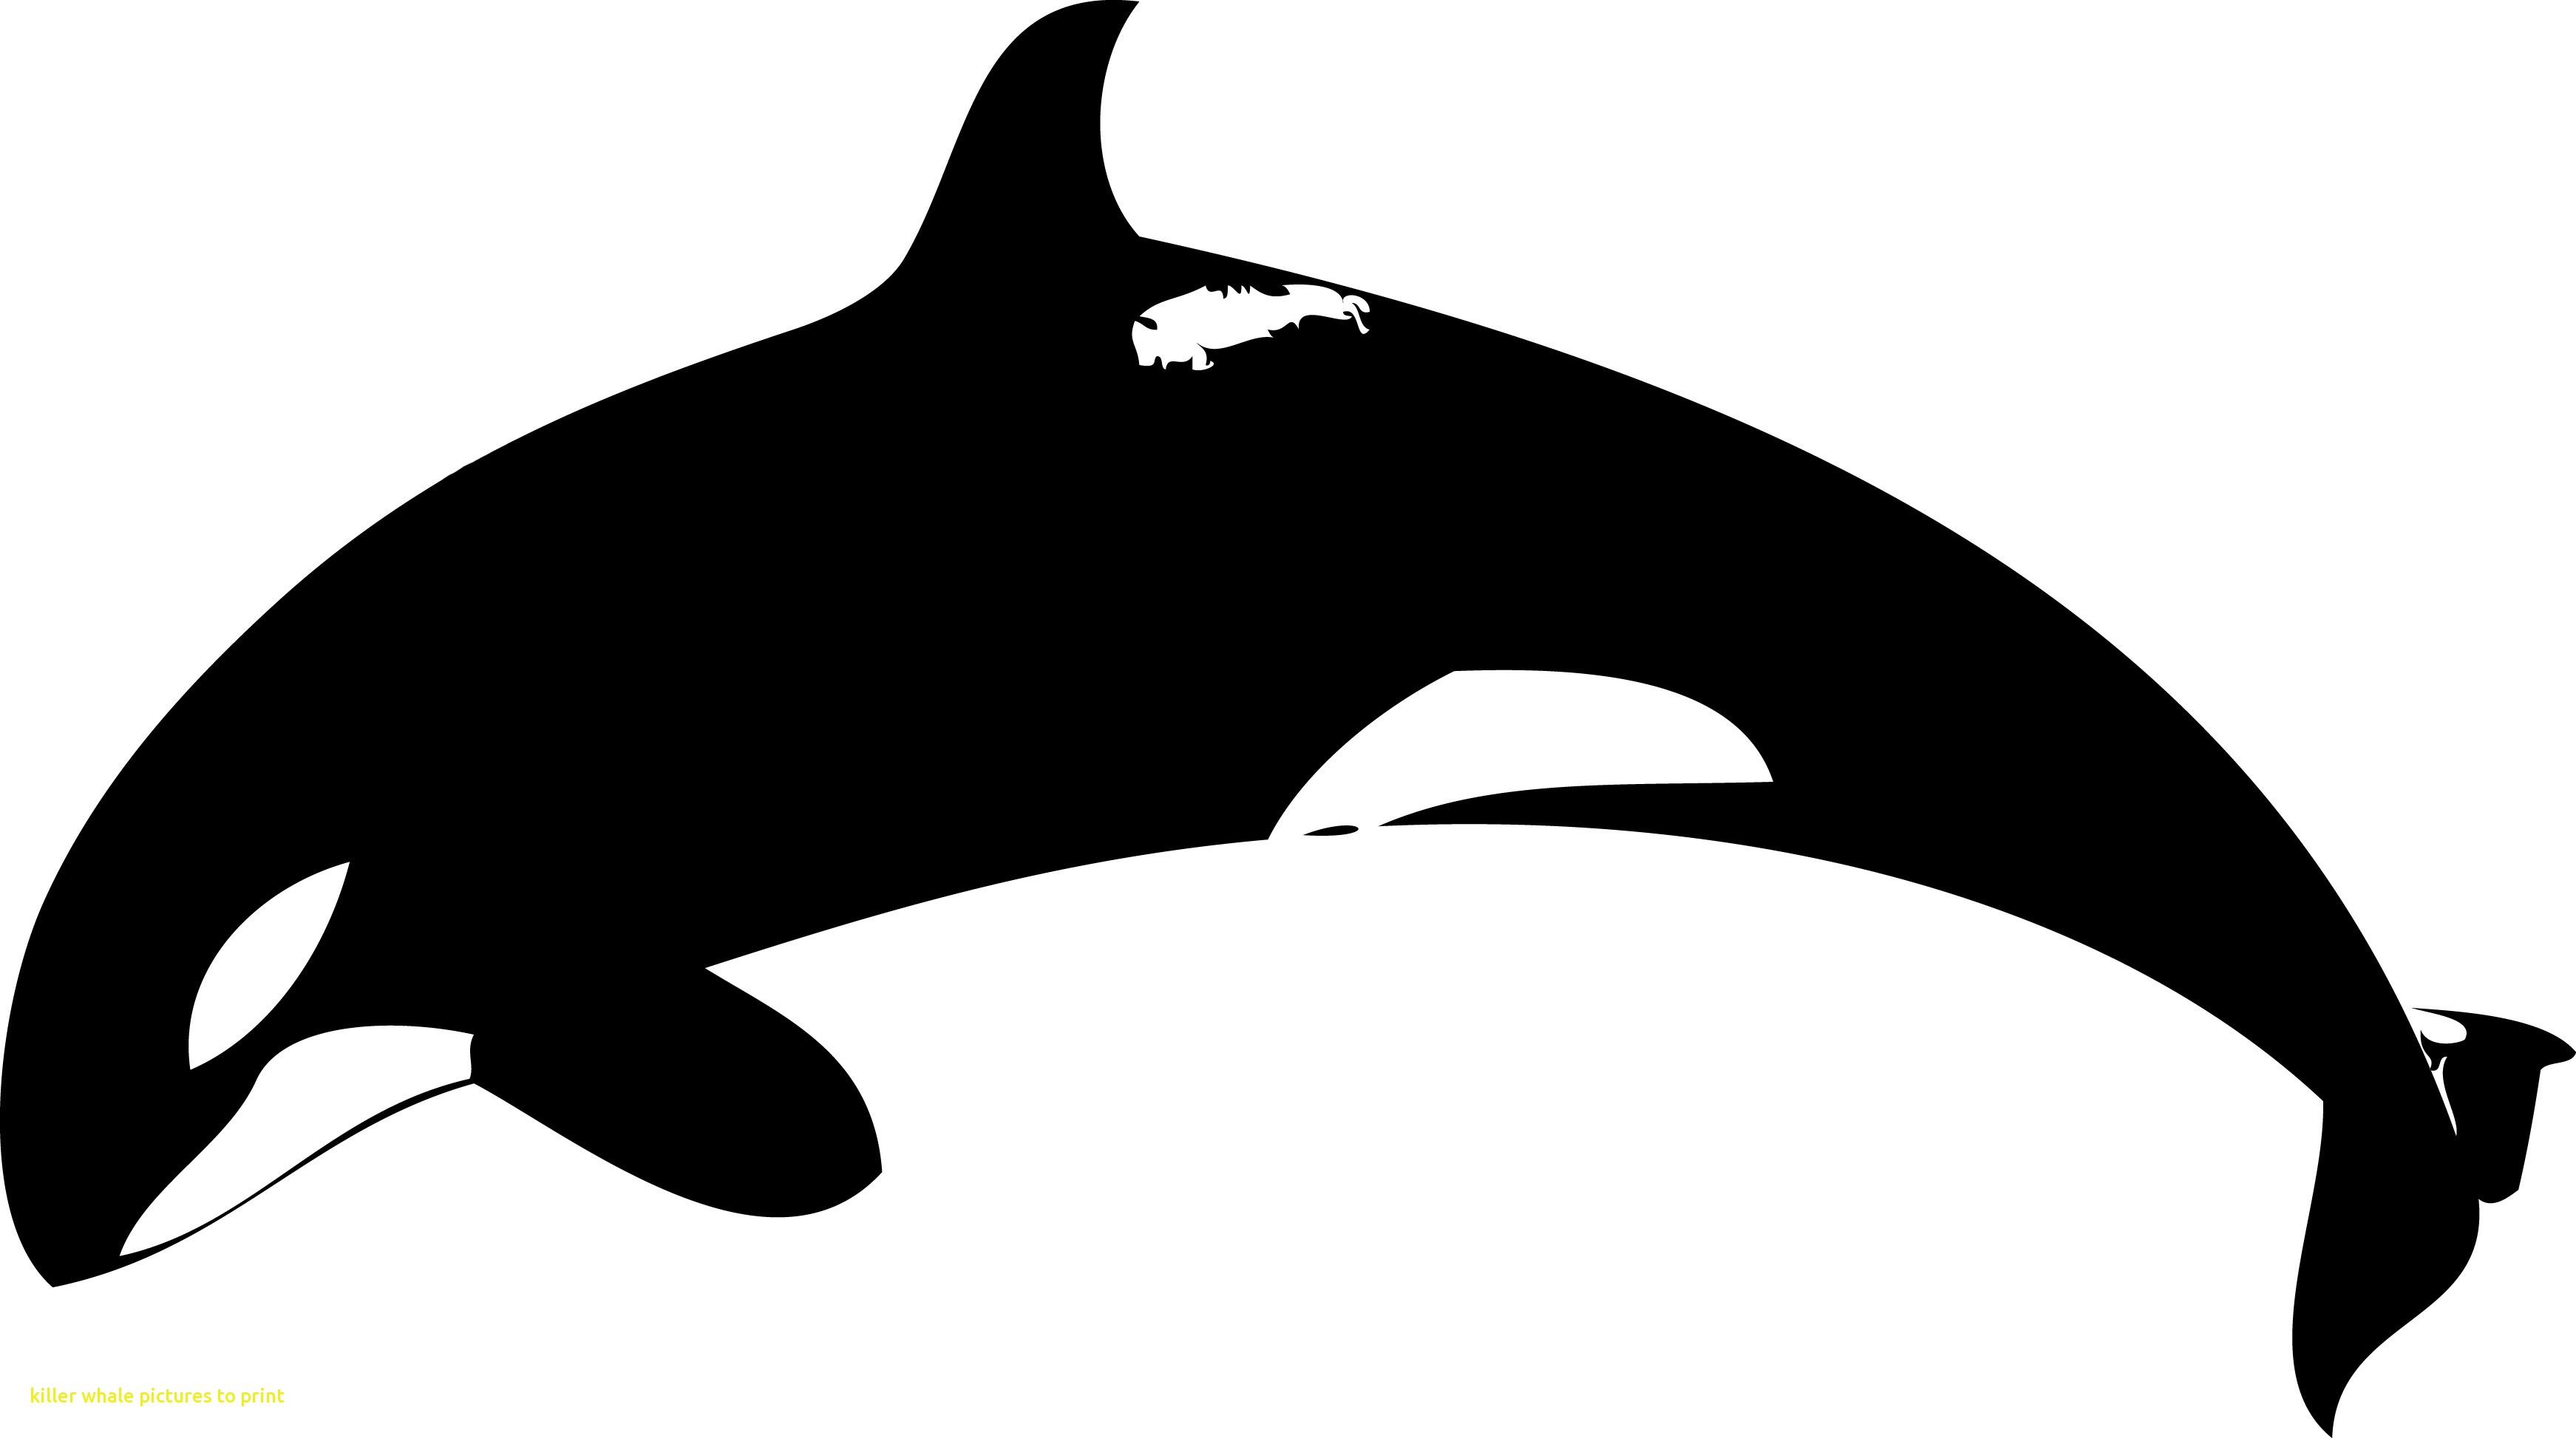 Emerging pictures to print. Orca clipart